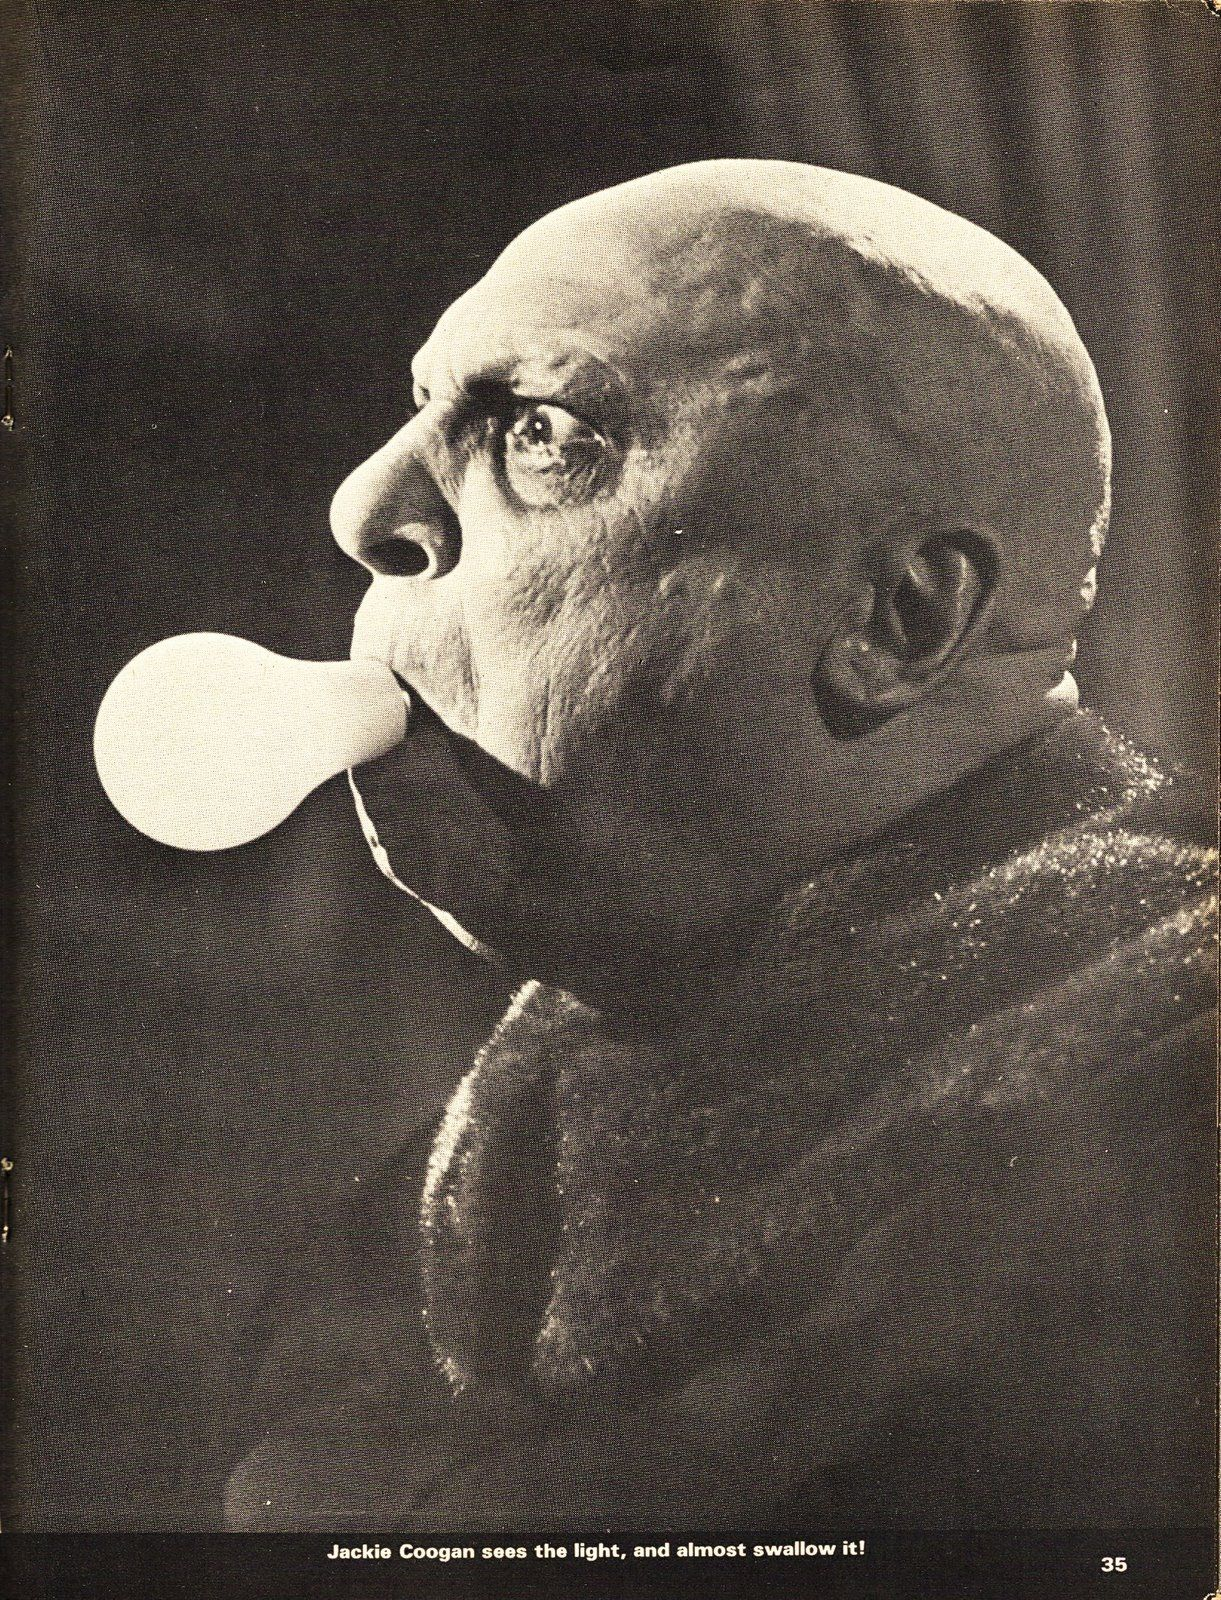 Uncle fester the addams family pinterest - Jackie Coogan As Uncle Fester In The Addams Family Original Tv Series That Joke Stopped Being Funny Efter 5 Episodes